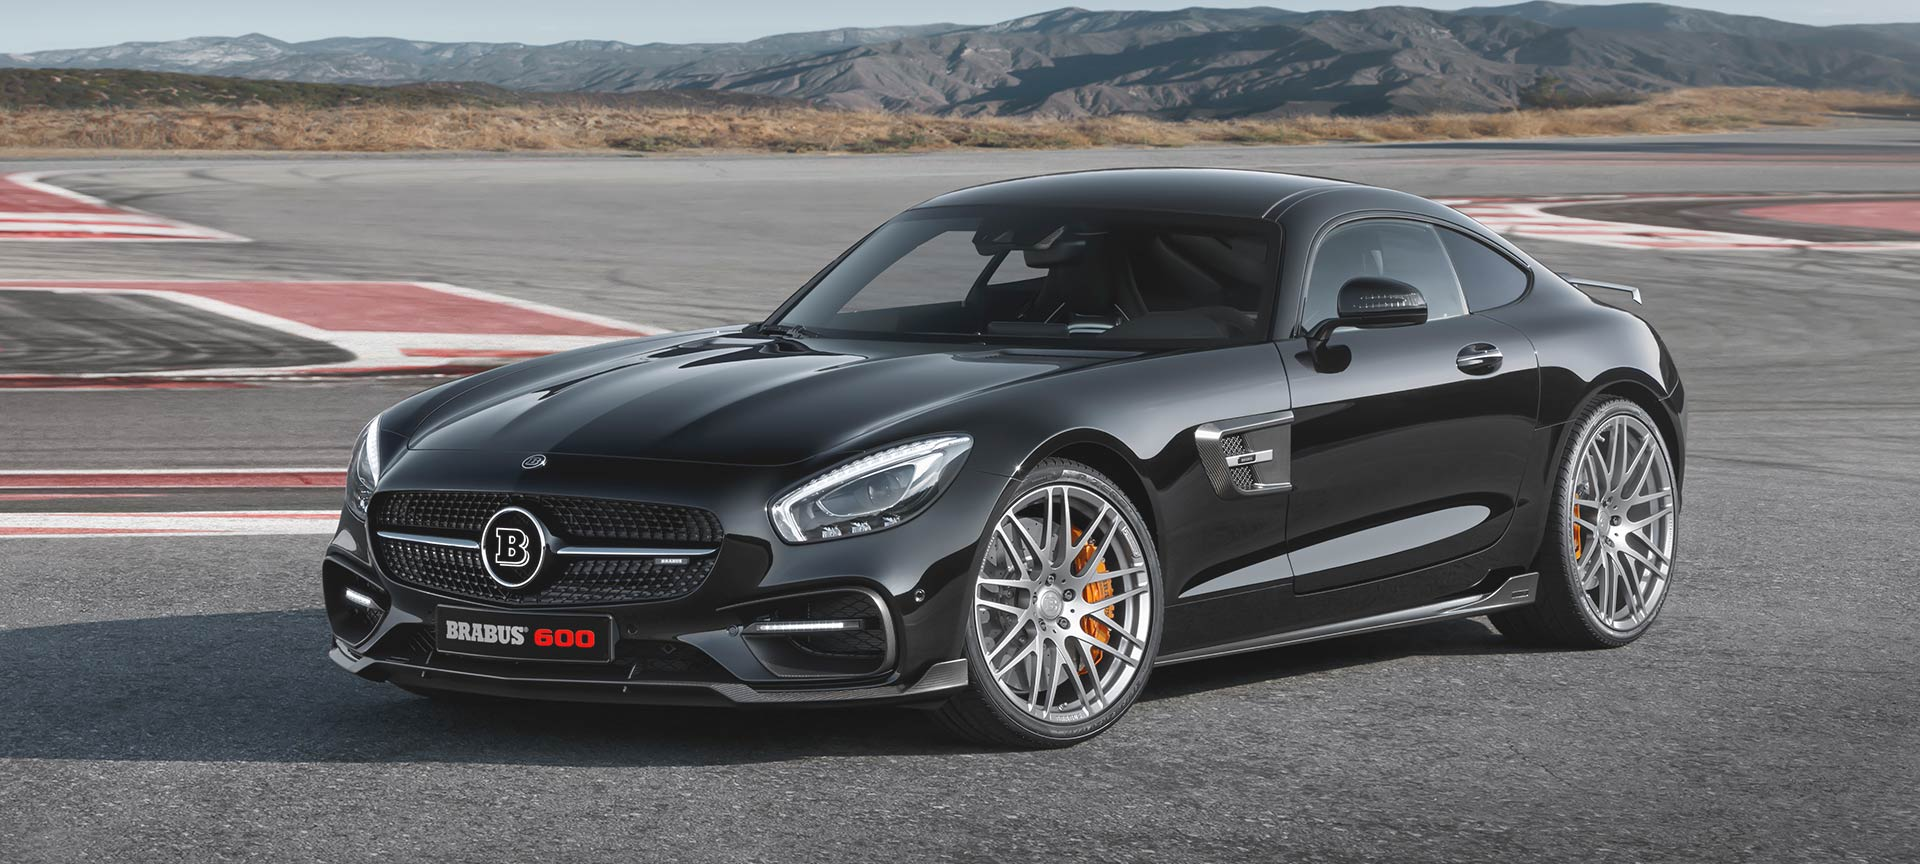 GTC German Tuning Corporation Brabus 600 AMG GTS